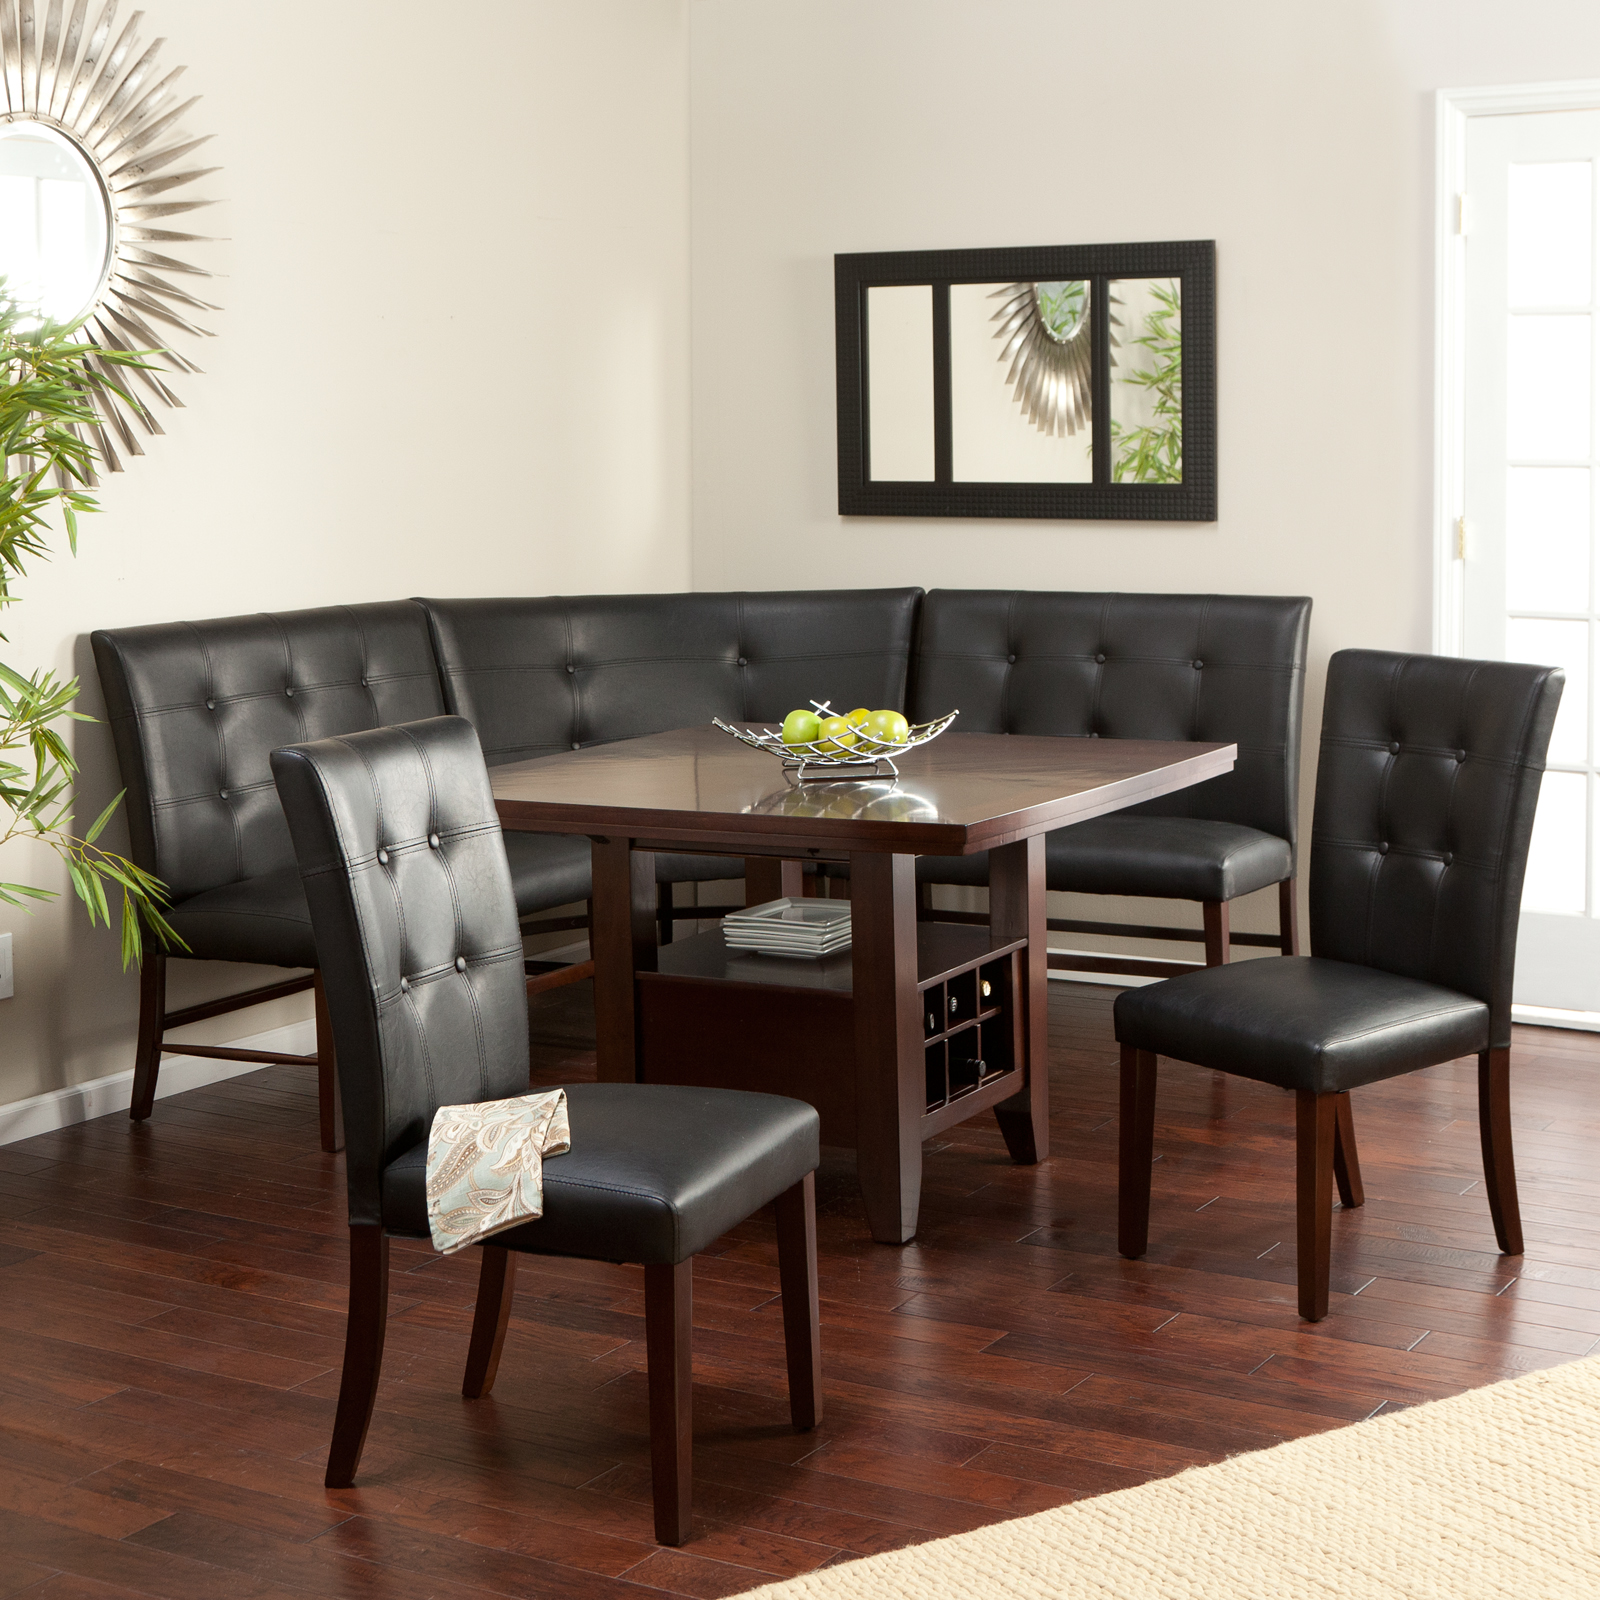 Charmant Layton Espresso 6 Piece Breakfast Nook Set